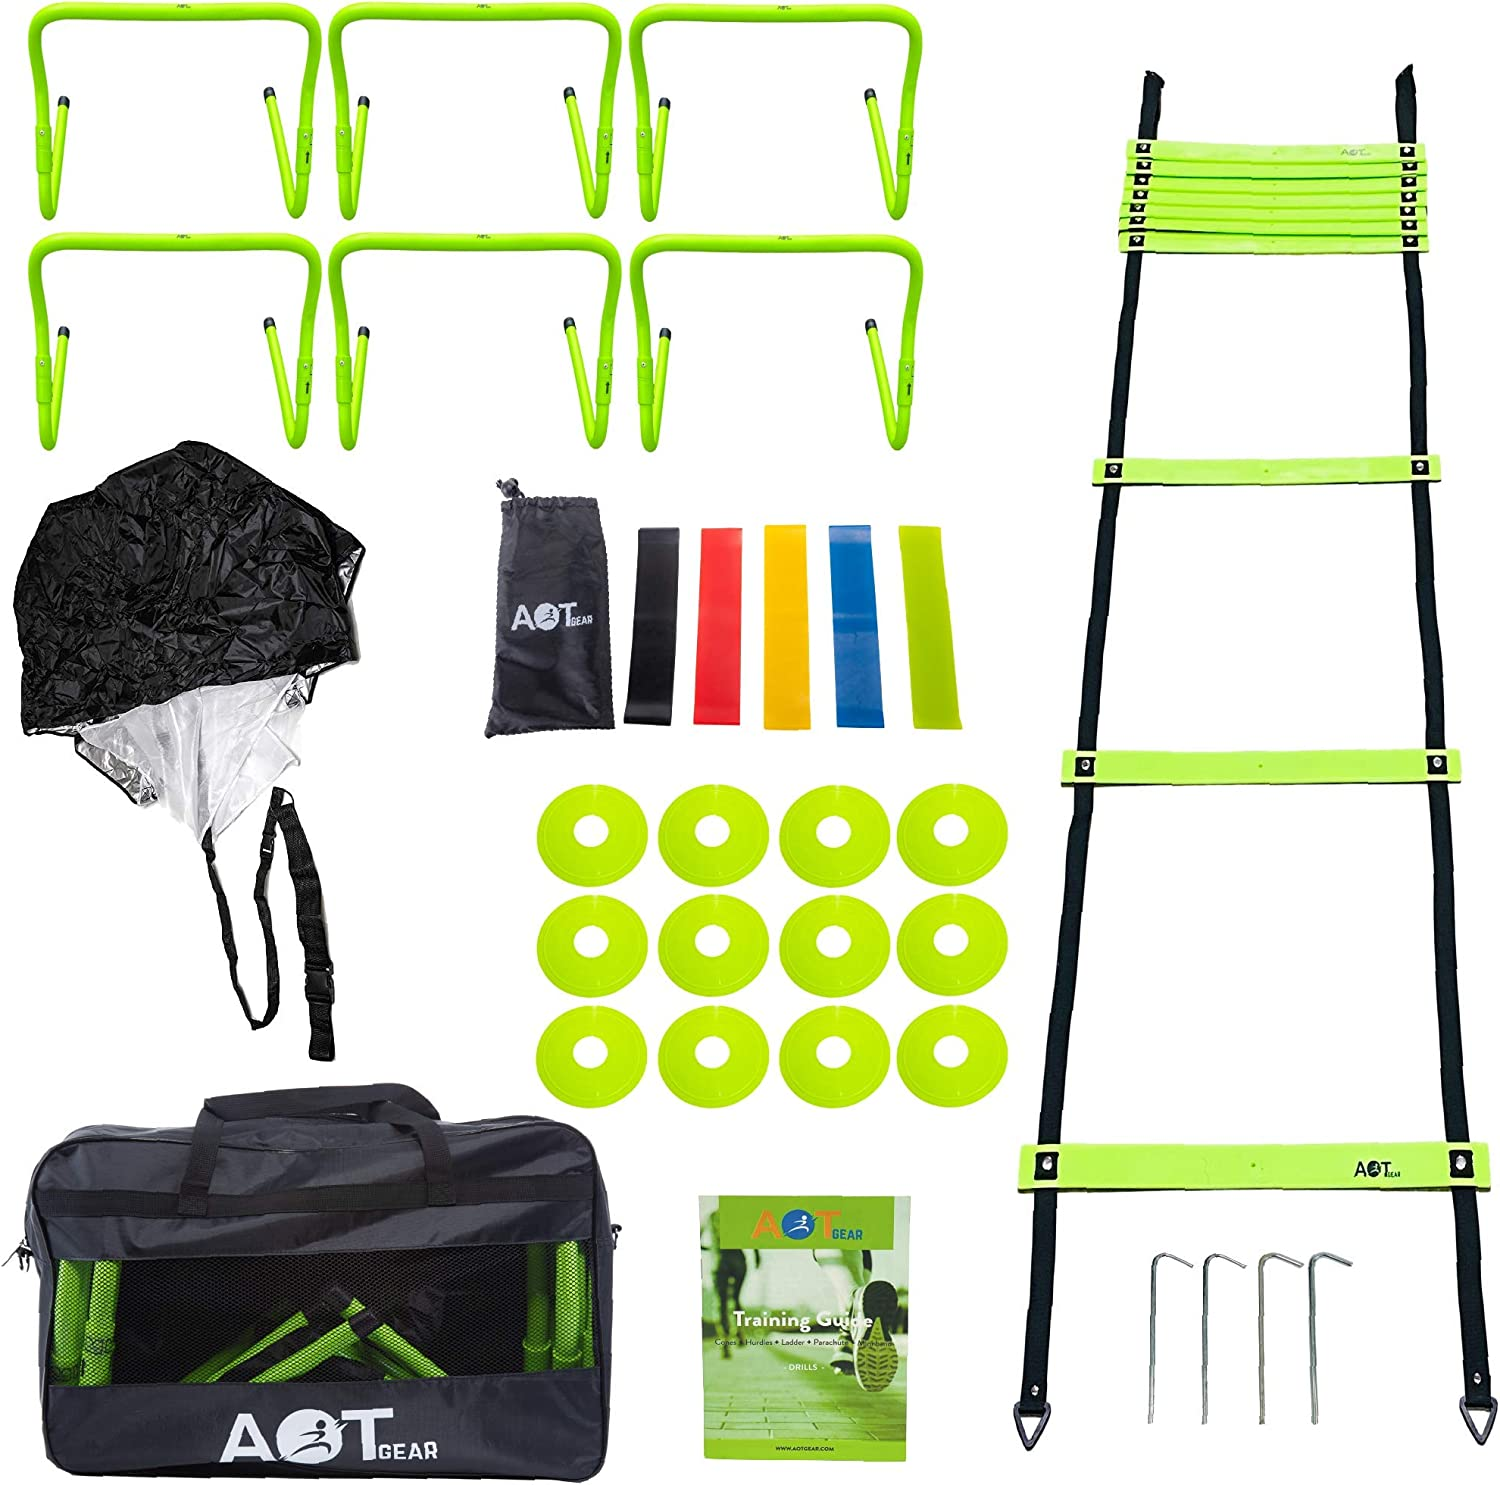 AOT Gear Speed Save money and Agility Training Set - Equipment Inc quality assurance Complete